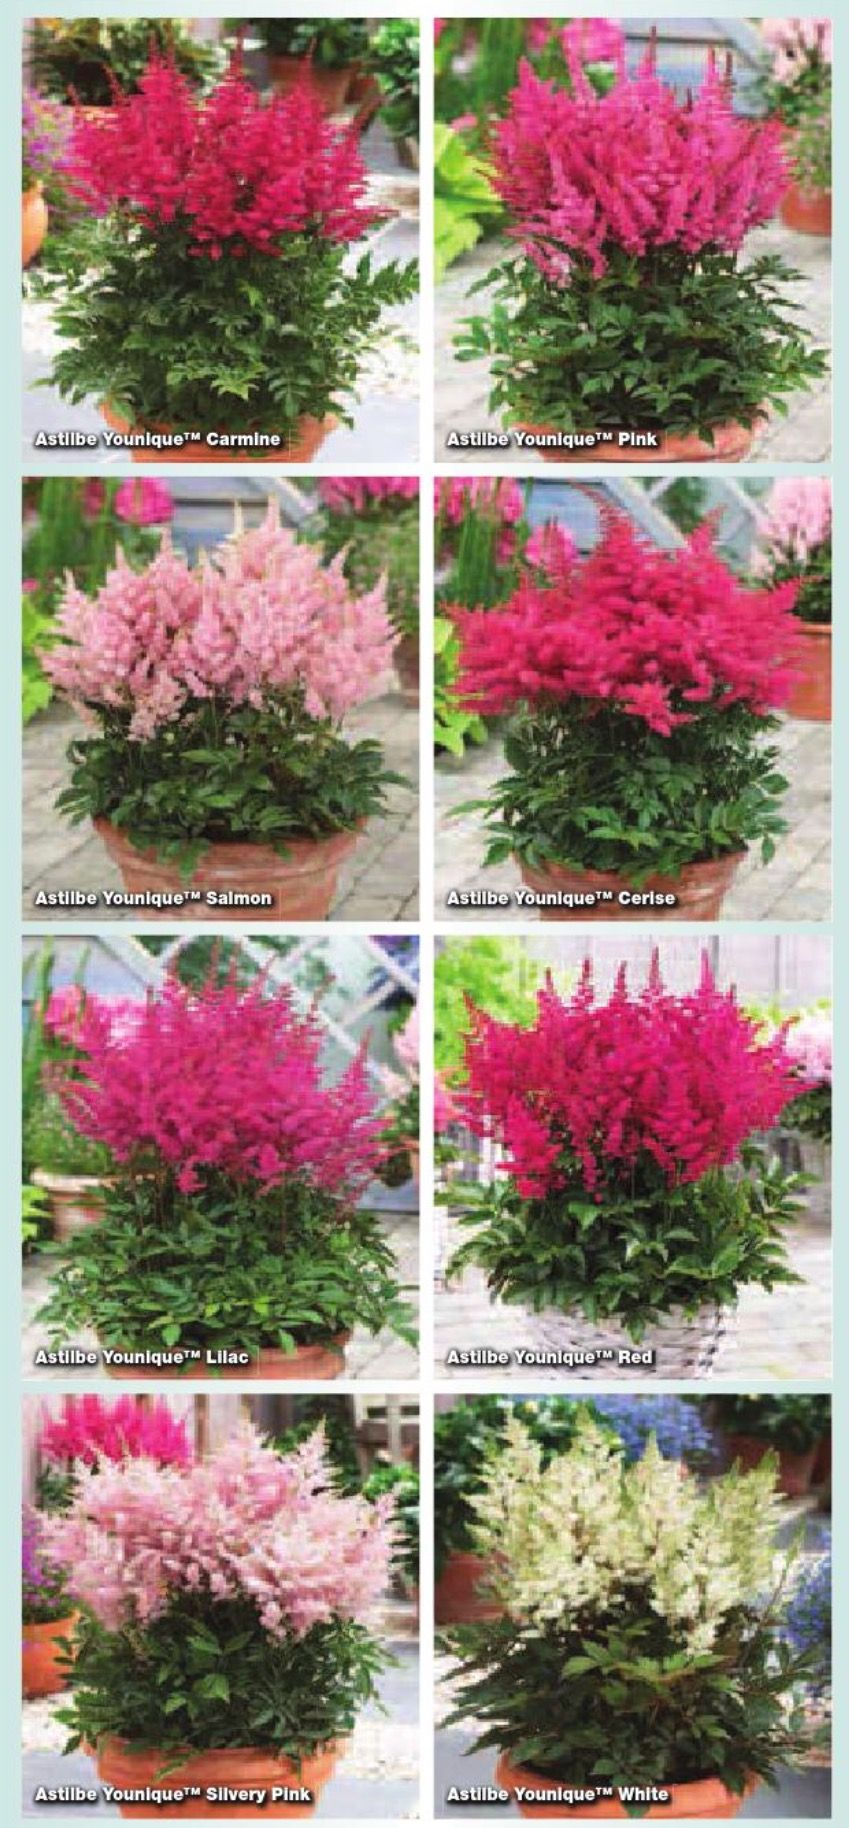 """Astilbe Younique Series - 8 colors. This hybrid from Dutch hybridizer Jan Verschoor tolerates heat & dryness better than most other astilbe. This hybrid has desirable improvements: earlier bloom time; more compact, rounded growing habit; more flower plumes in attractive bunches per plant; & increased disease resistance. 16-20"""" tall when in bloom."""